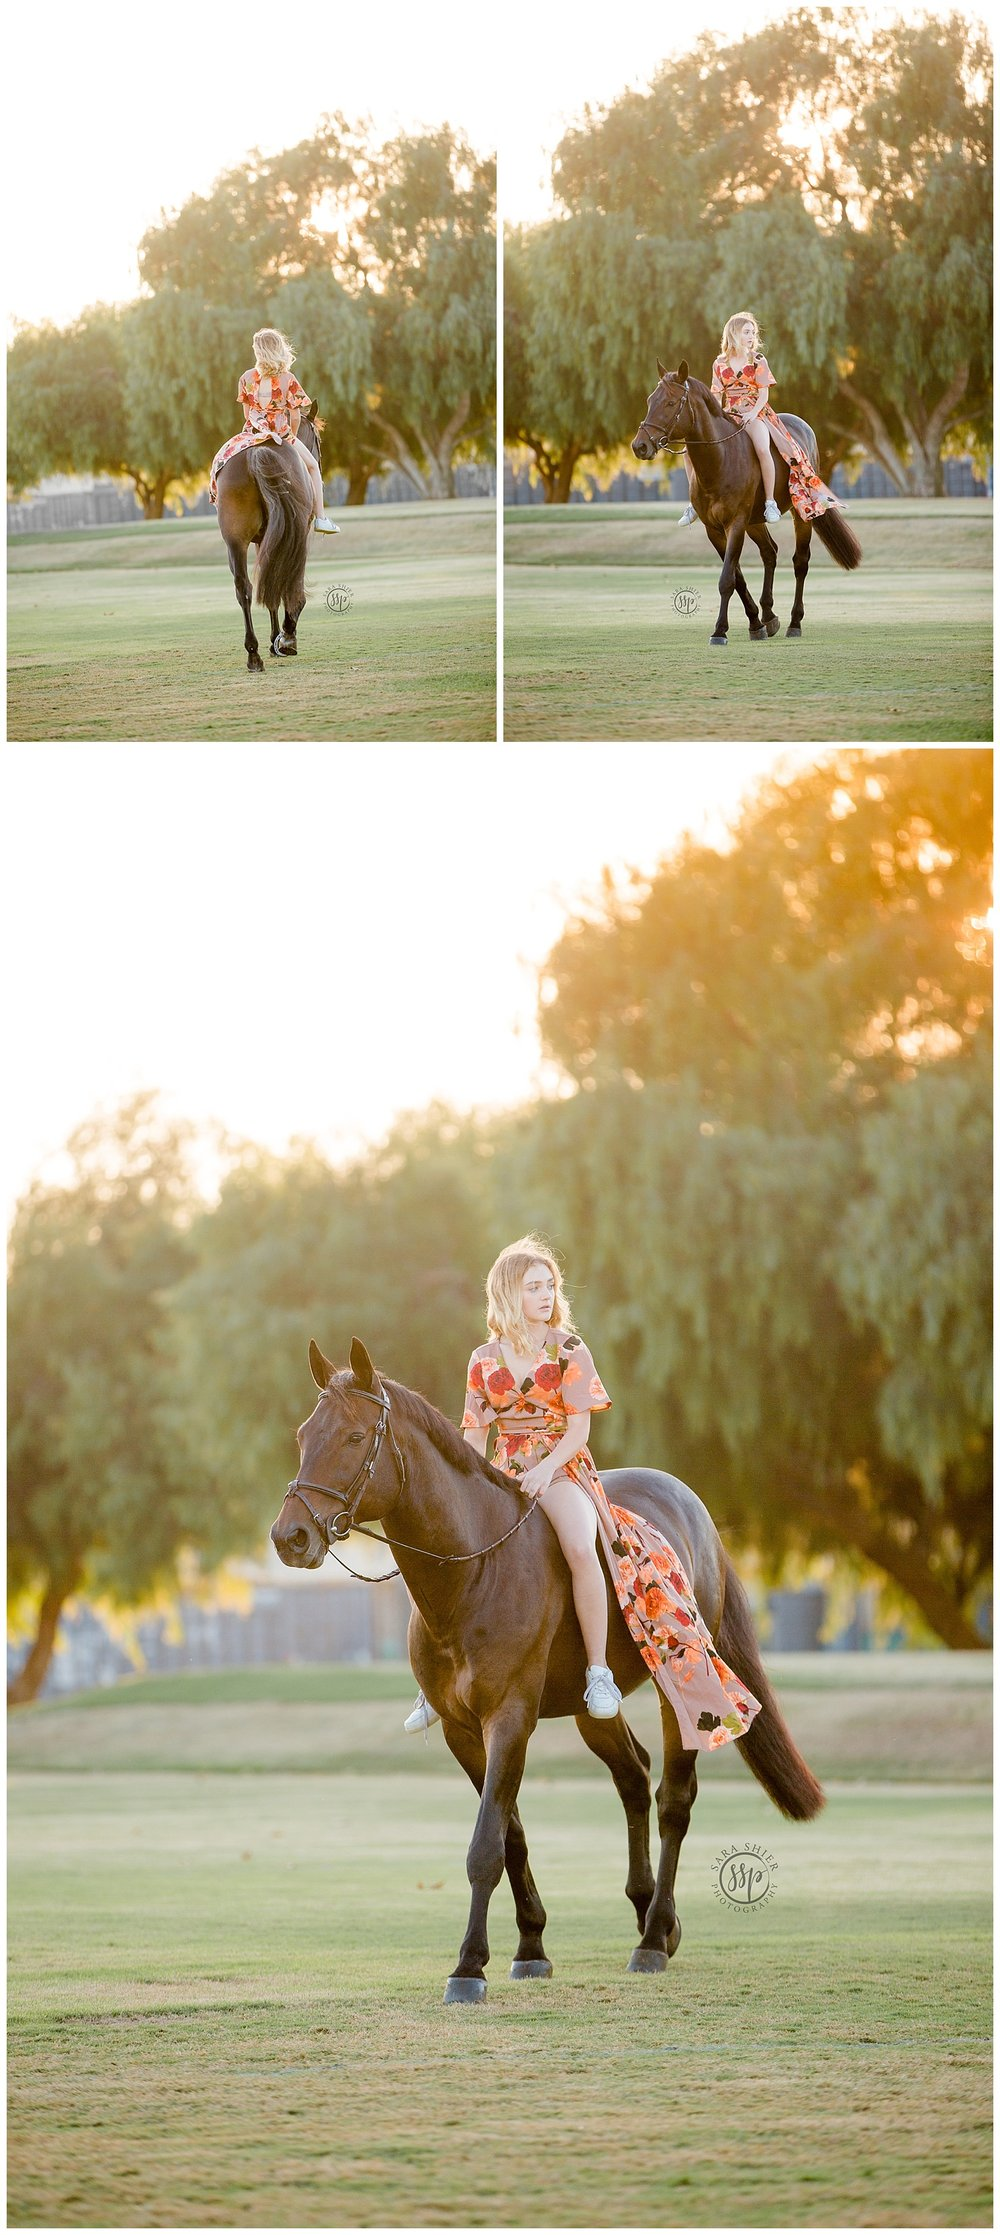 Black Background Horse Rider Equine Photographer Southern California Sara Shier Photography SoCal Equestrian Cowgirl_0087.jpg